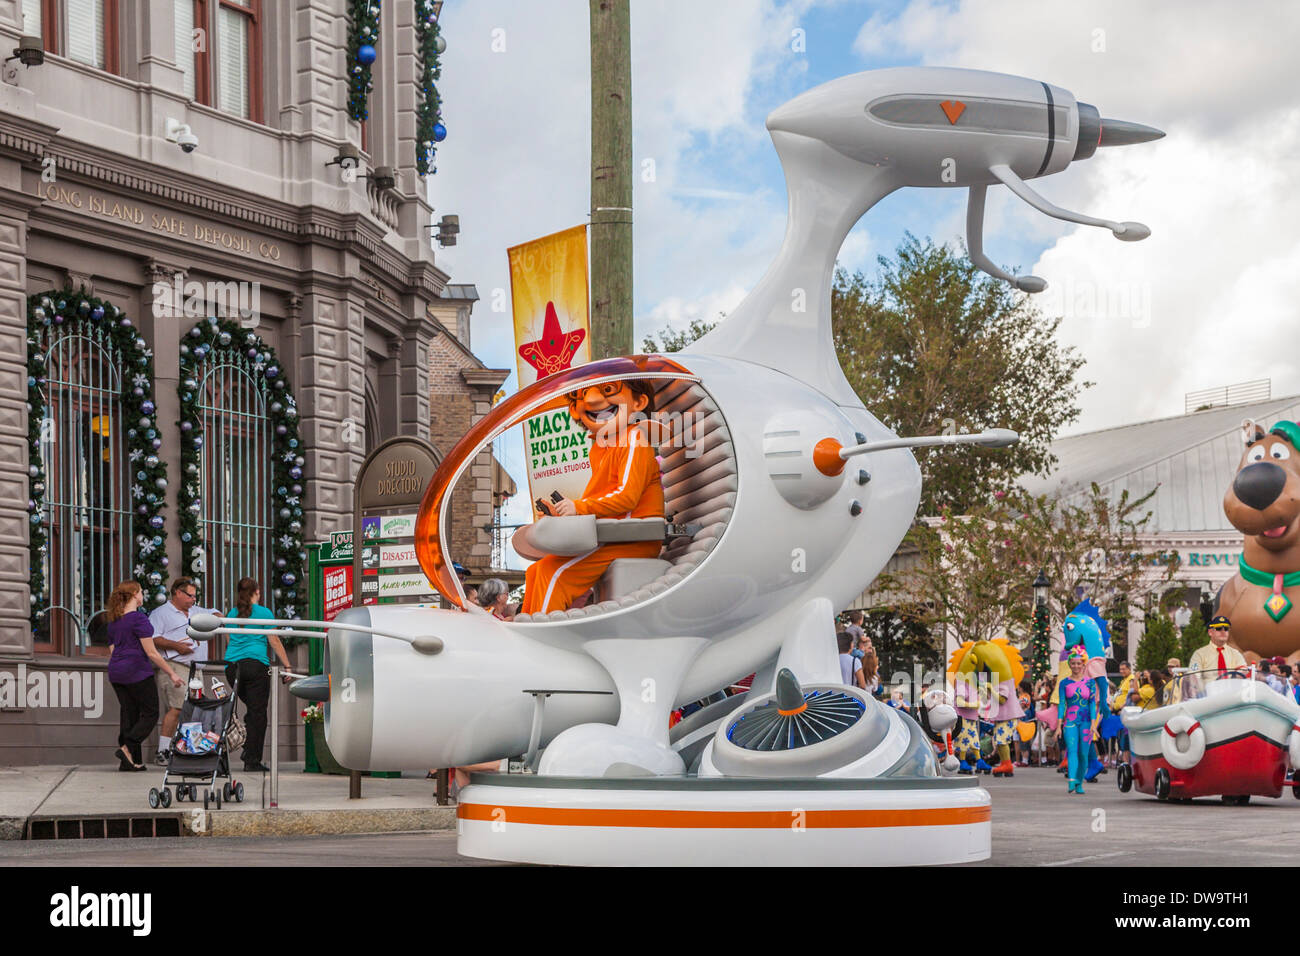 Vector from Despicable Me rides spaceship float in parade at Universal Studios theme park in Orlando, Florida - Stock Image